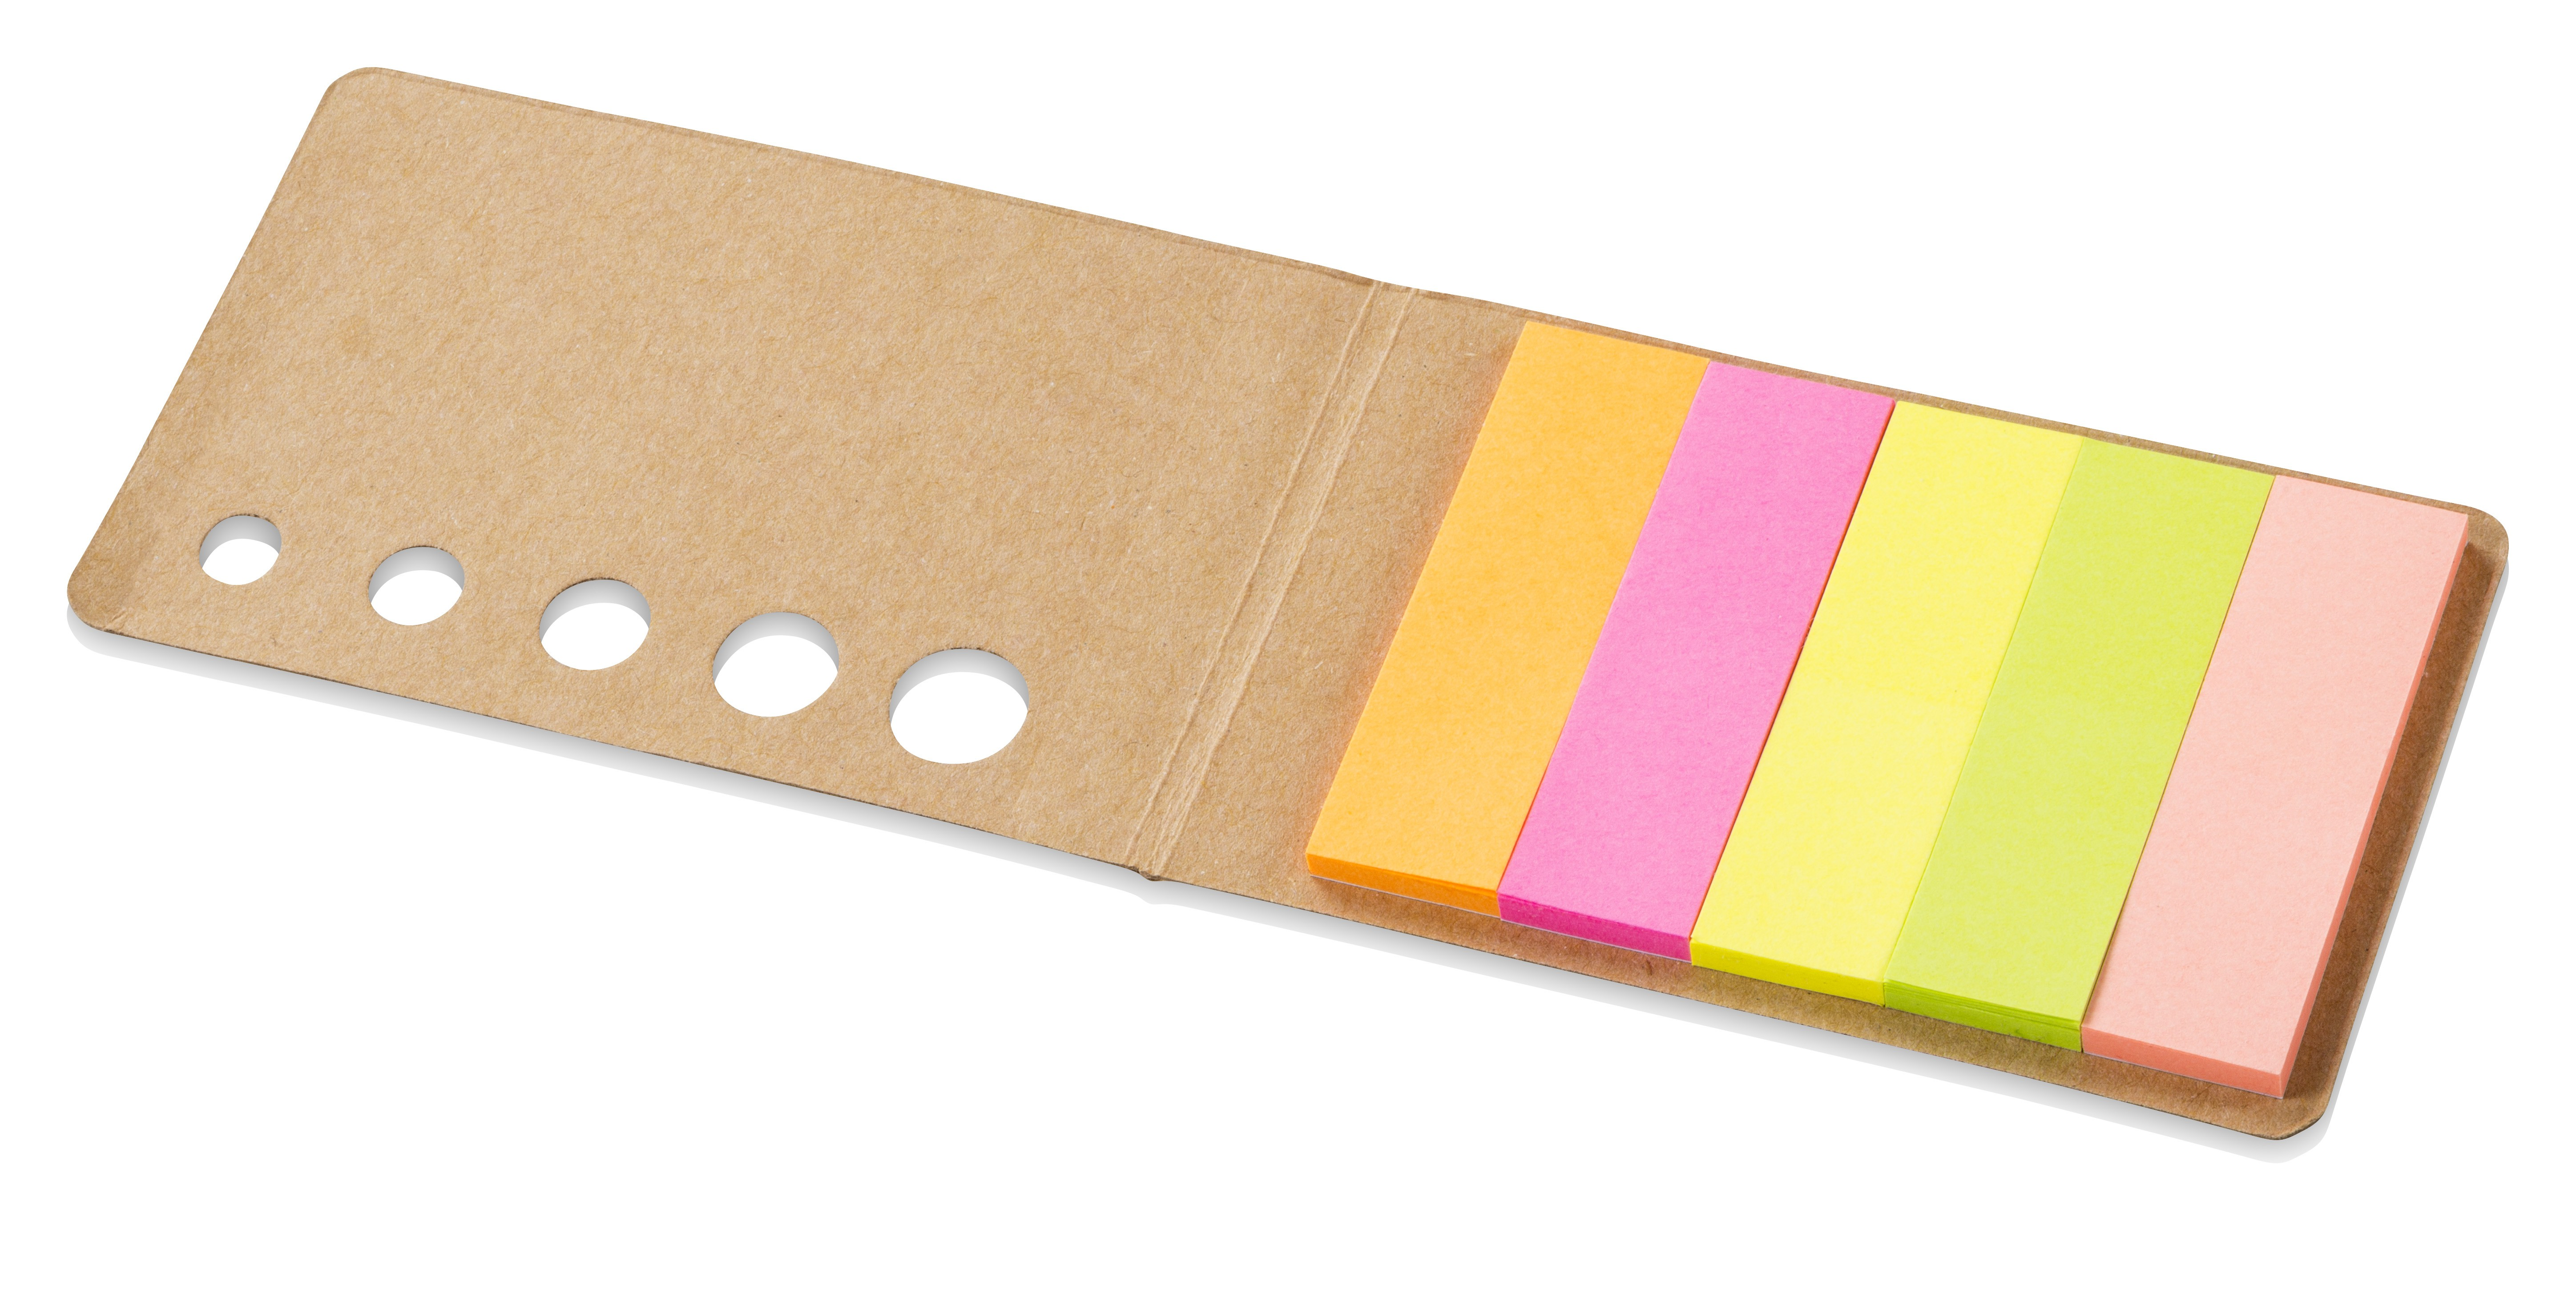 Promotional Fergason sticky notes